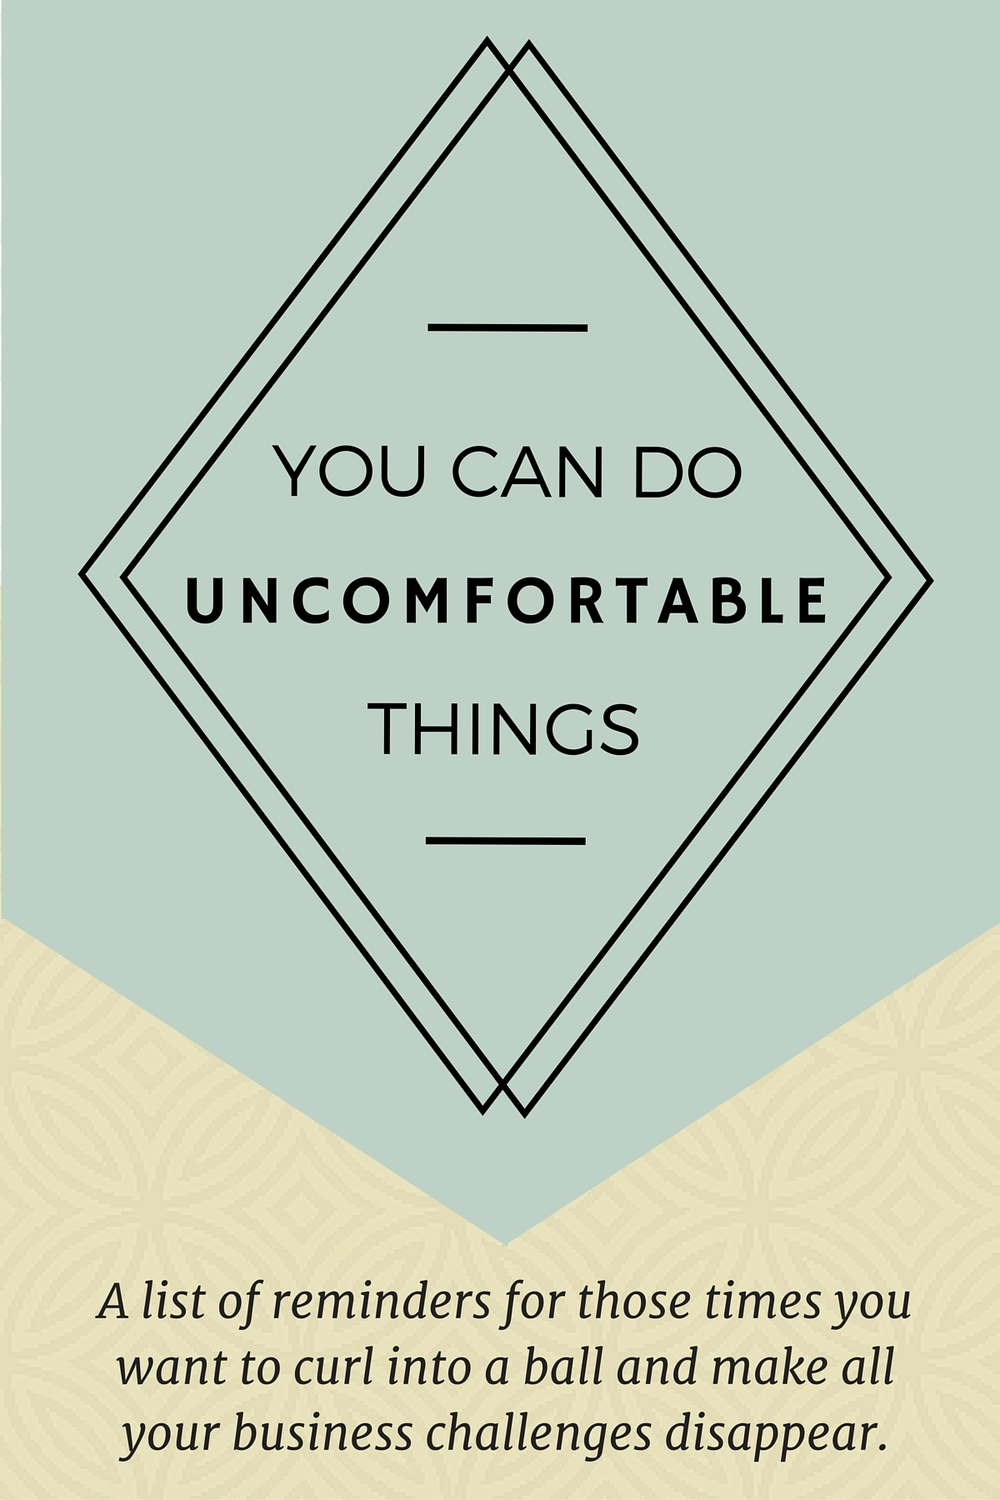 You can do uncomfortable things. A list of reminders for those times when you want to curl into a ball and make all your business challenges disappear.